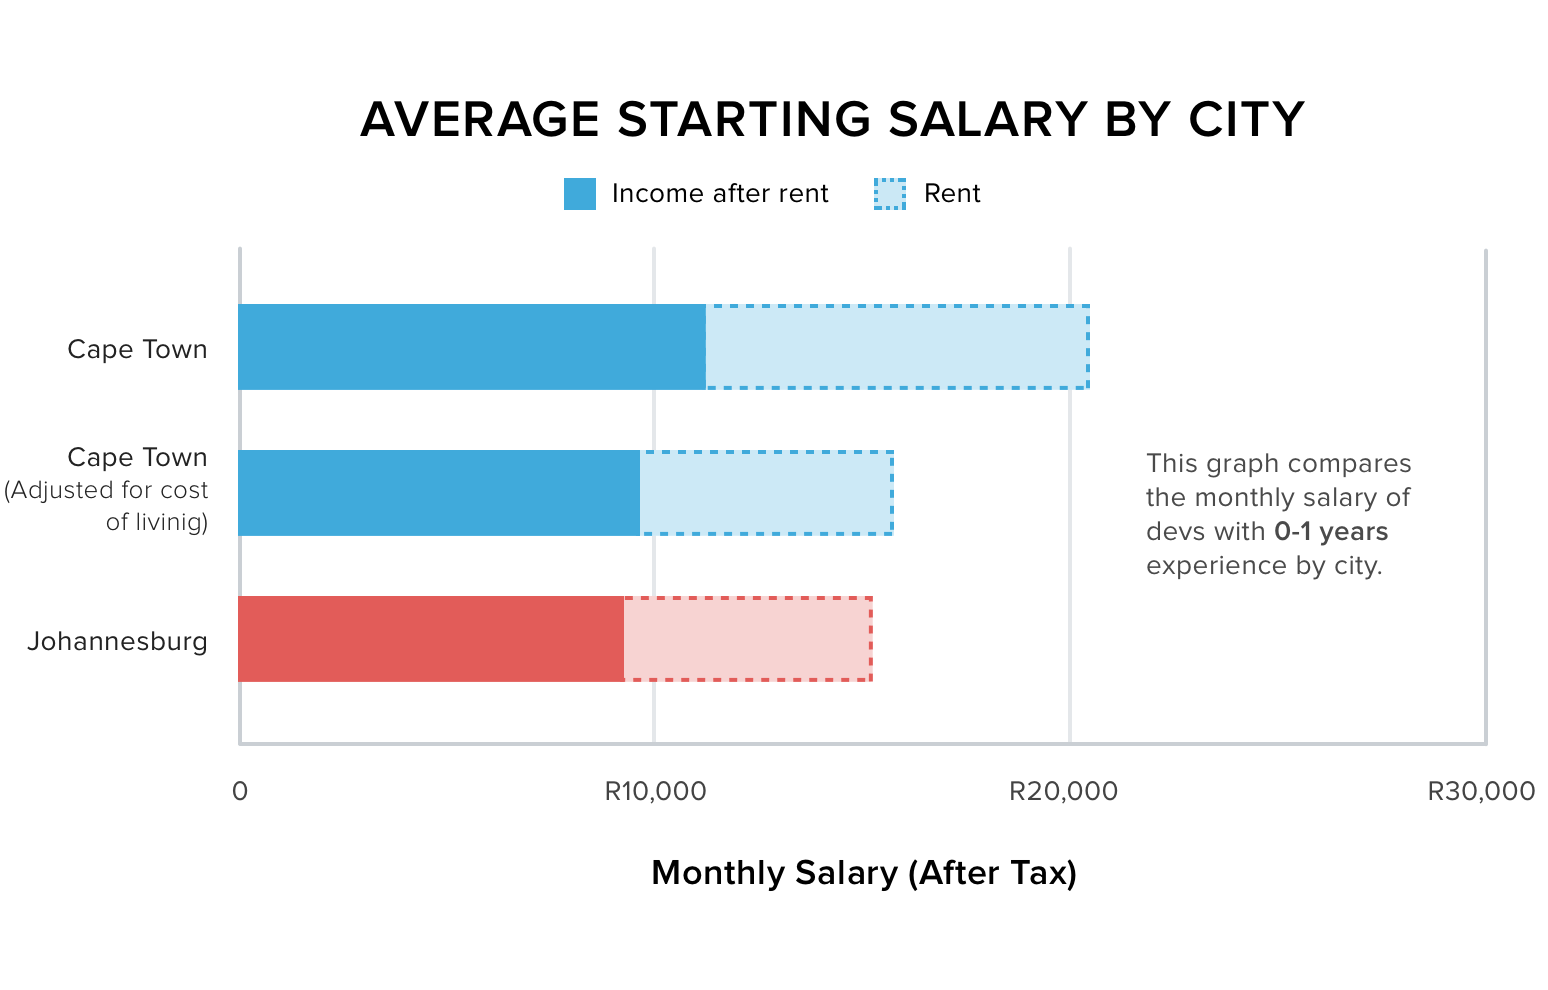 Average starting salary by city